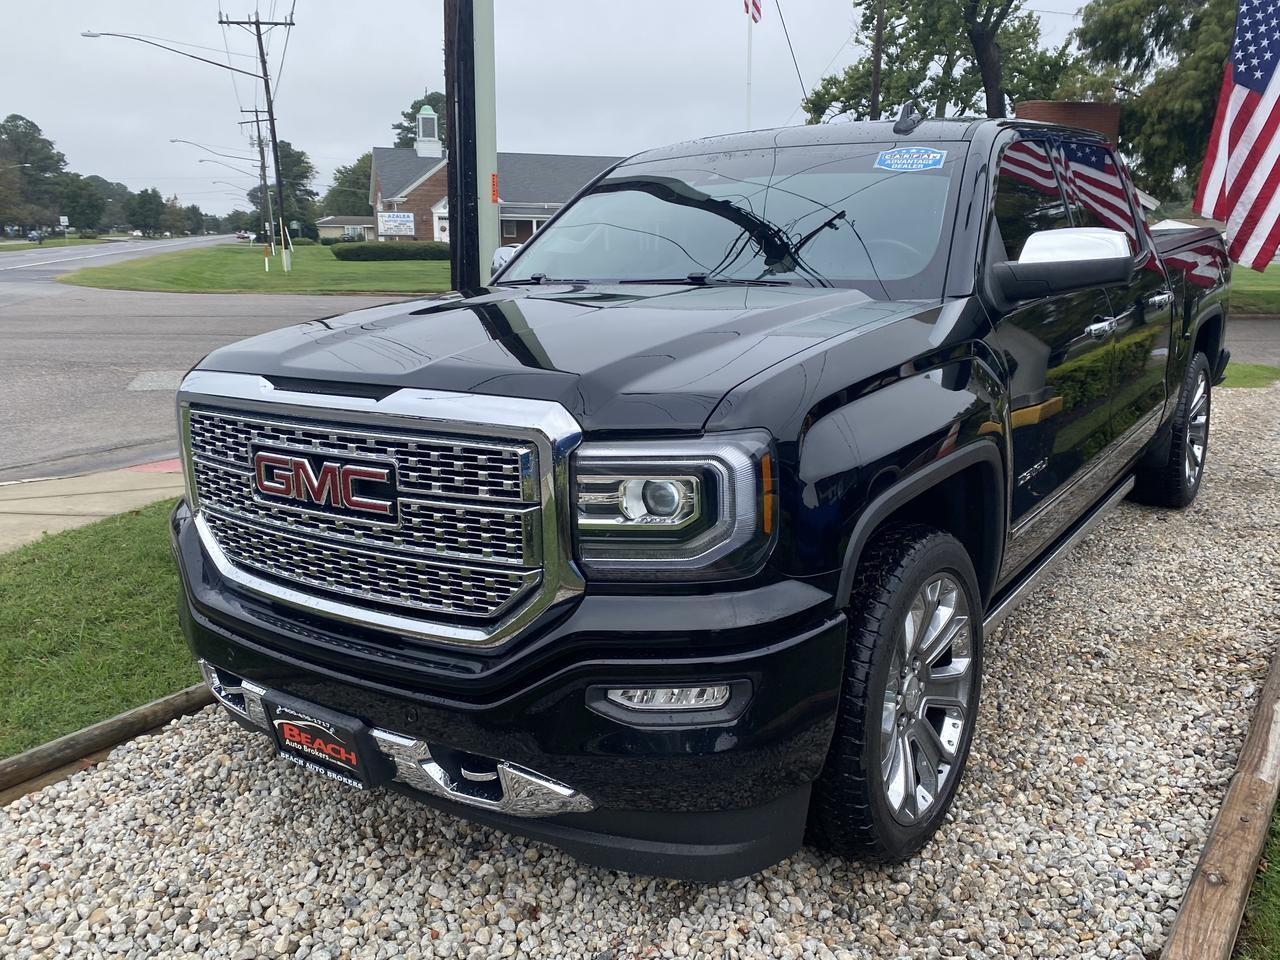 2015 GMC SIERRA 1500 DENALI CREW CAB 4X4, WARRANTY, LEATHER, SUNROOF, NAV, HEATED SEATS, POWER RUNNING BOARDS,CLEAN! Norfolk VA